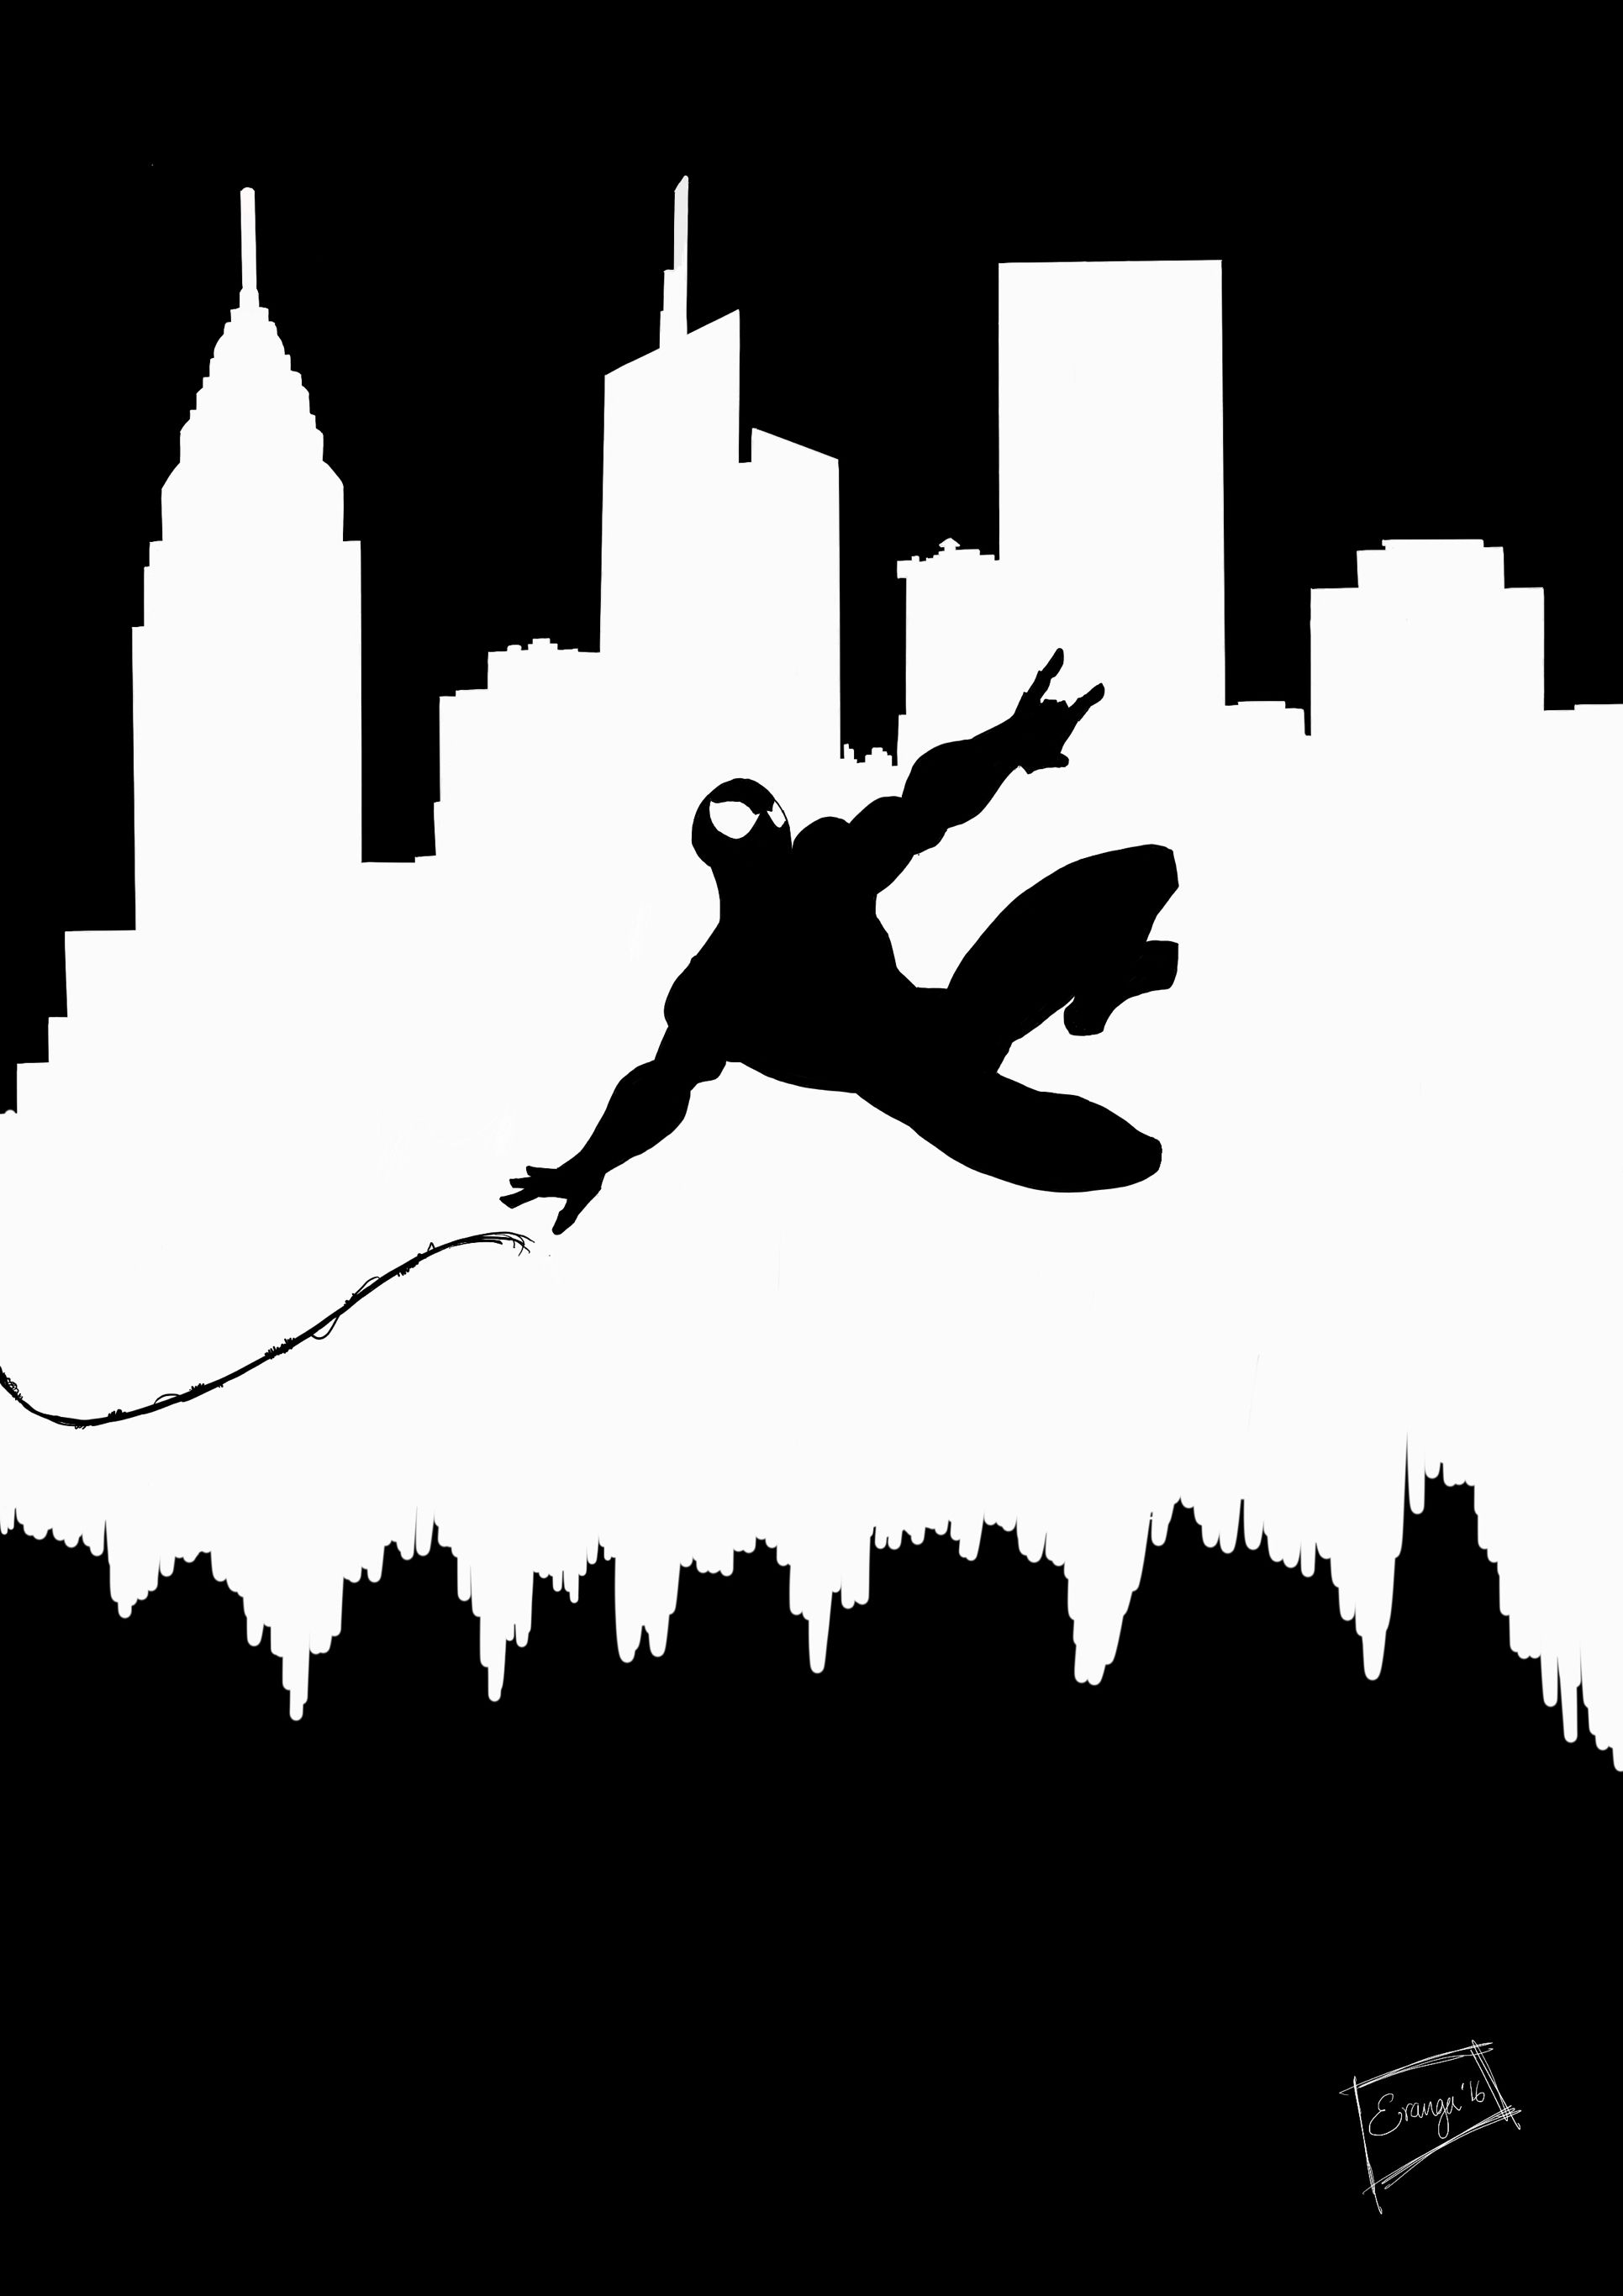 Spider Man My Artwork Silhouettes Spiderman Wall